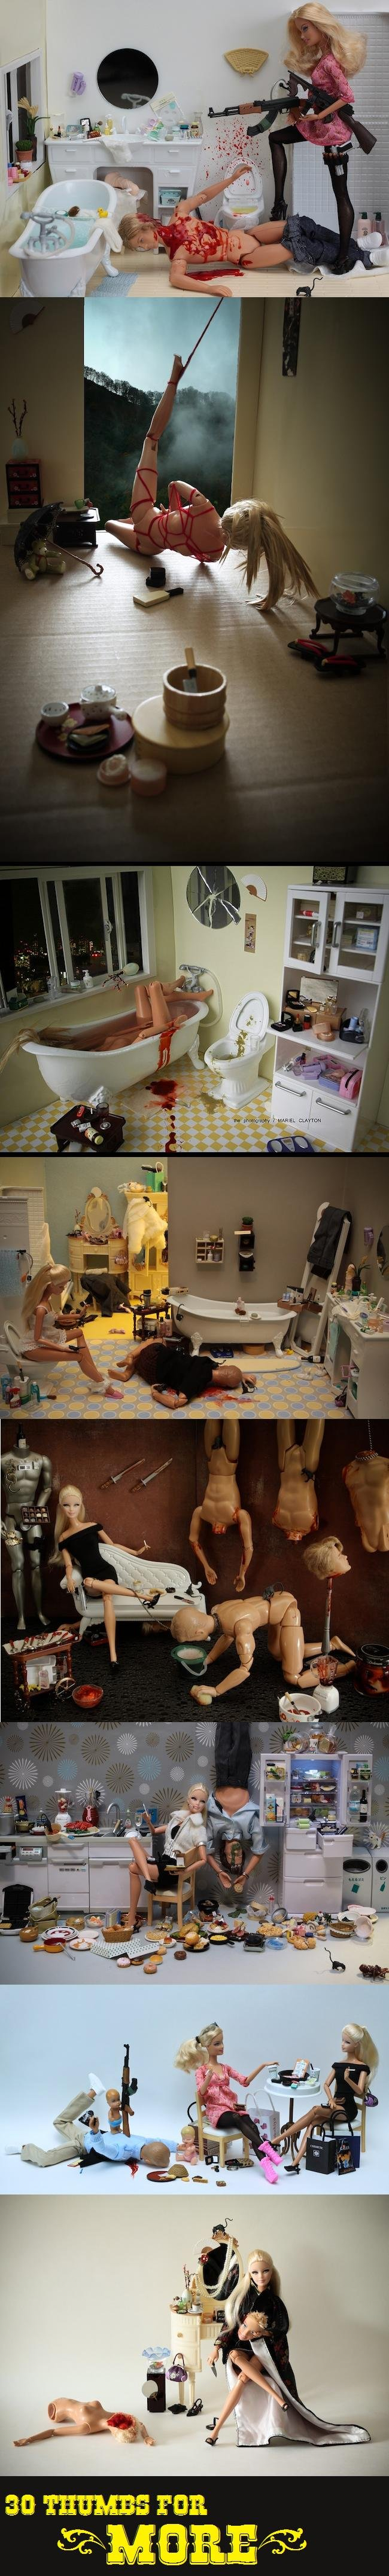 """Bad Barbie. alright, here's the second one<br /> <a href=""""pictures/1548664/Bad+Barbie+2/"""" target=blank>www.funnyjunk.com/funnypictures/154"""